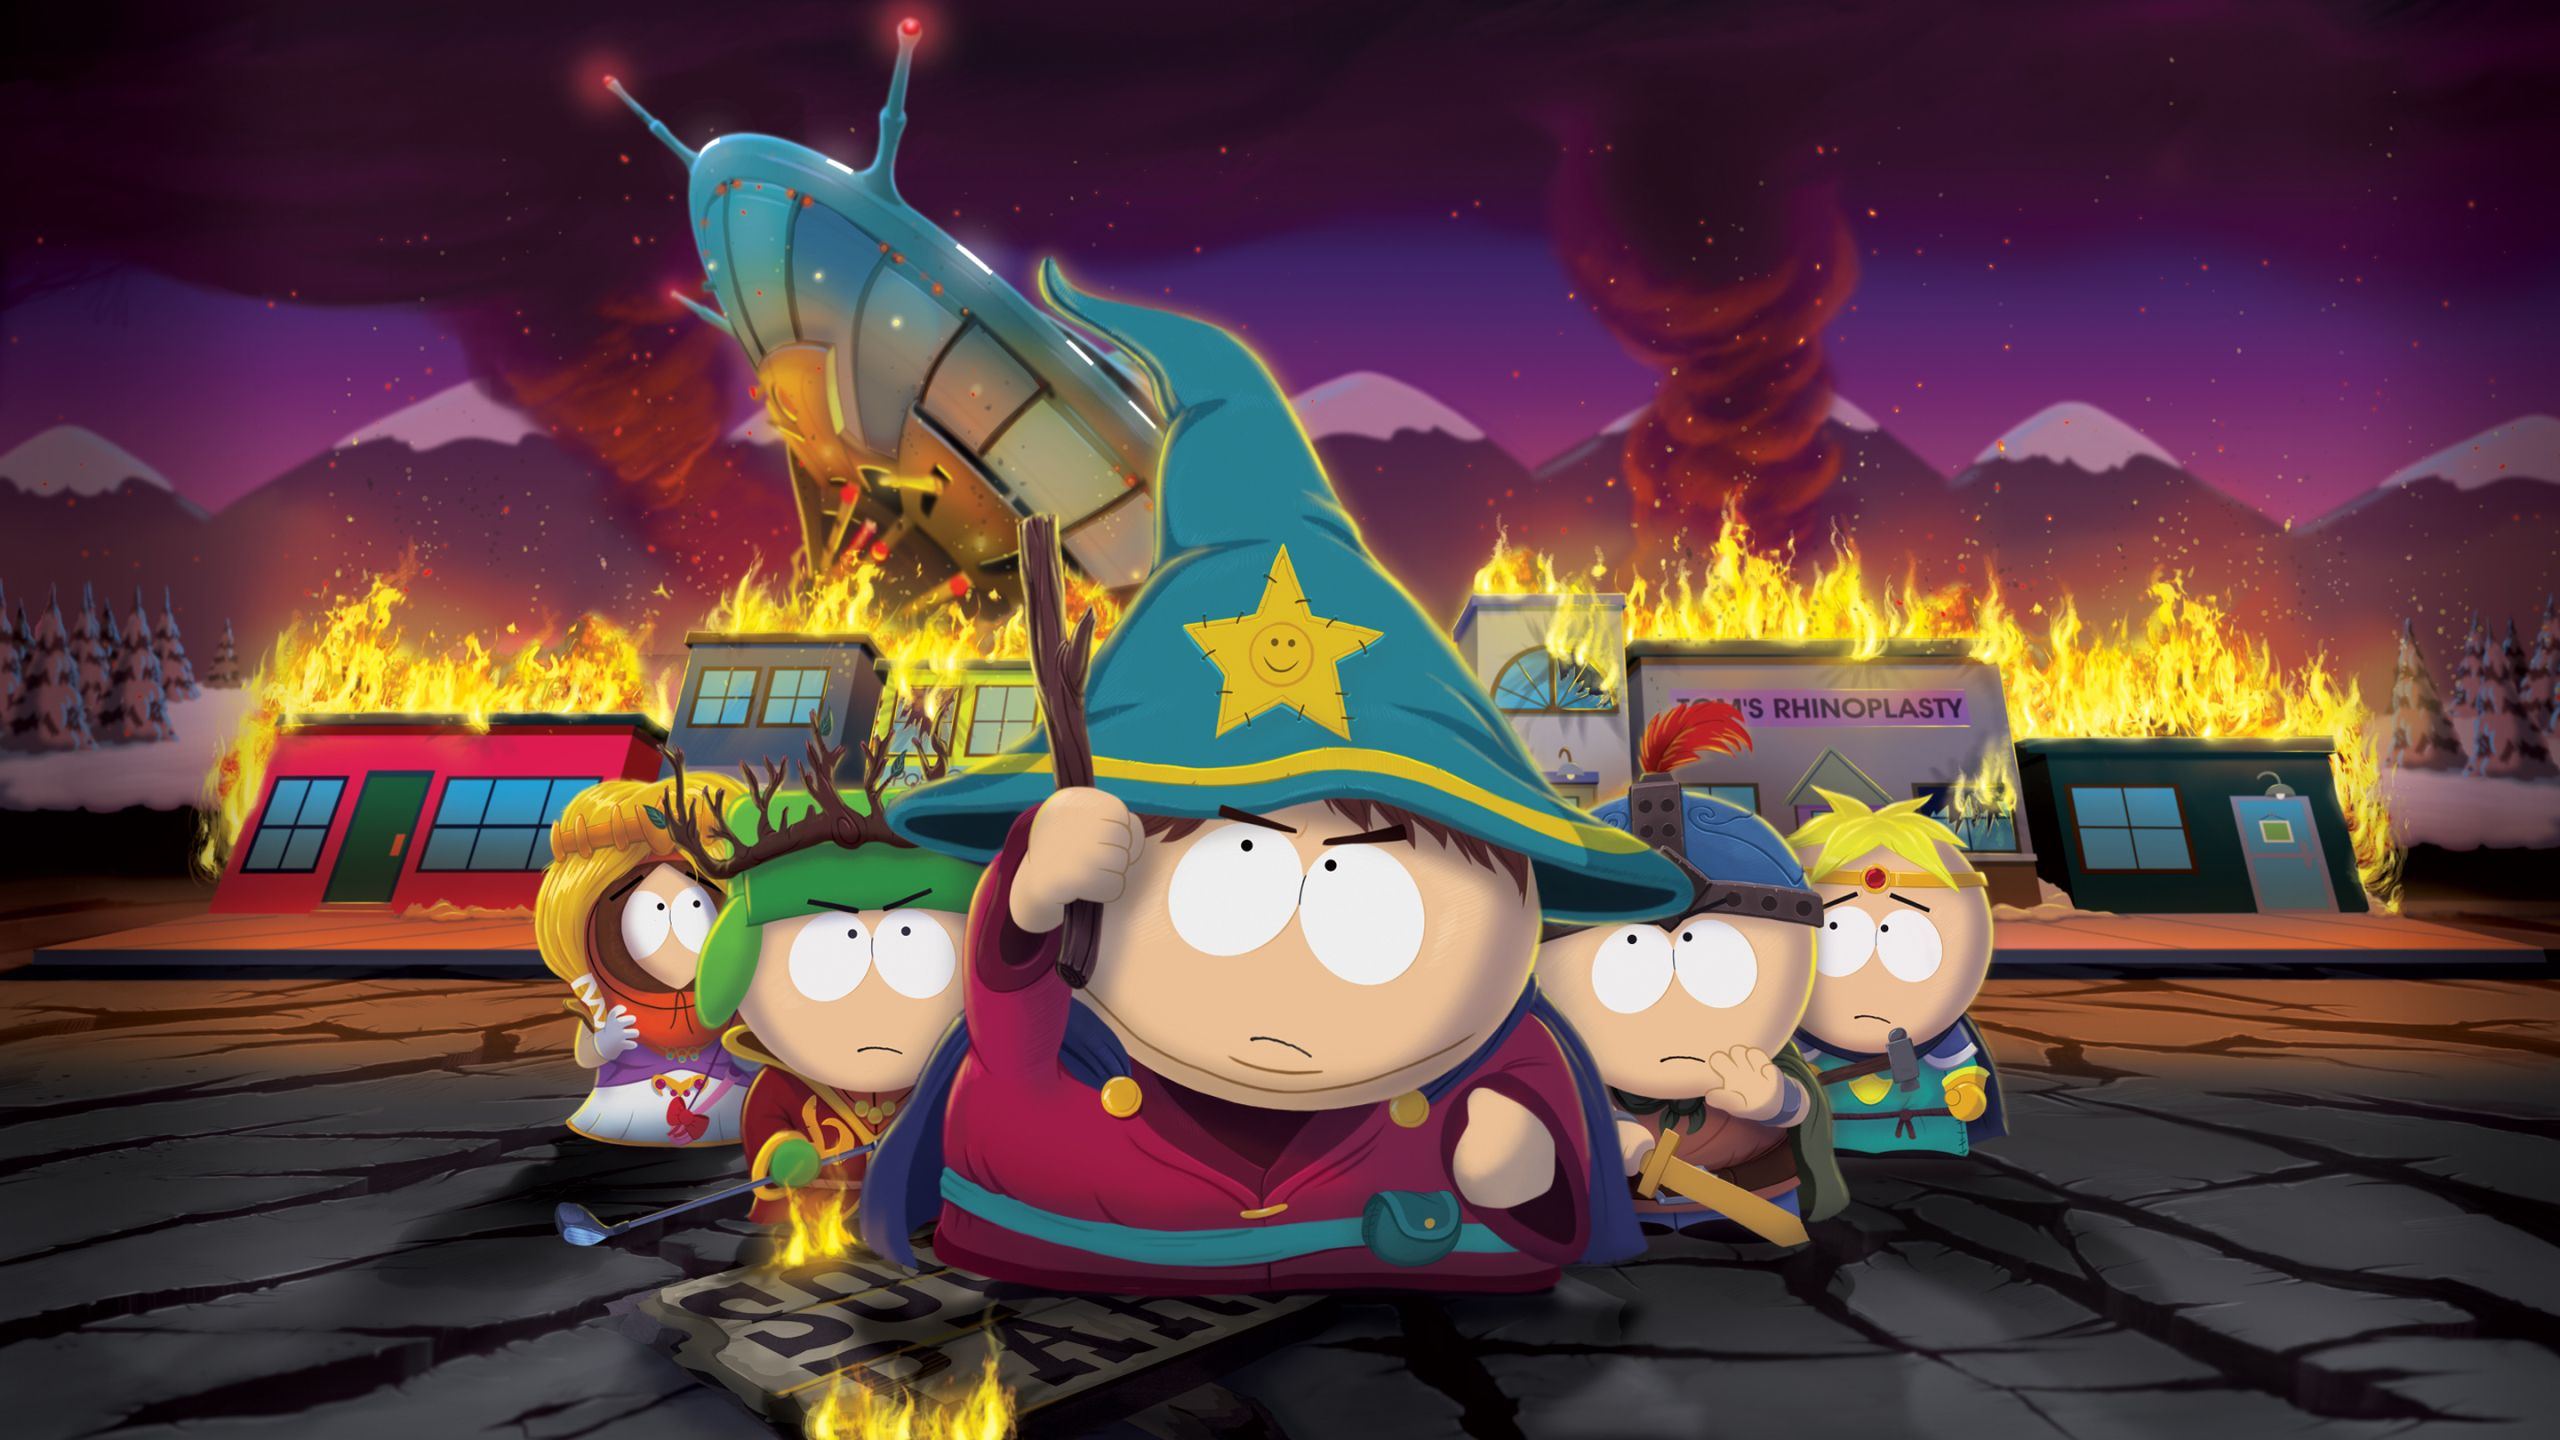 Video Game South Park The Stick of Truth South Park